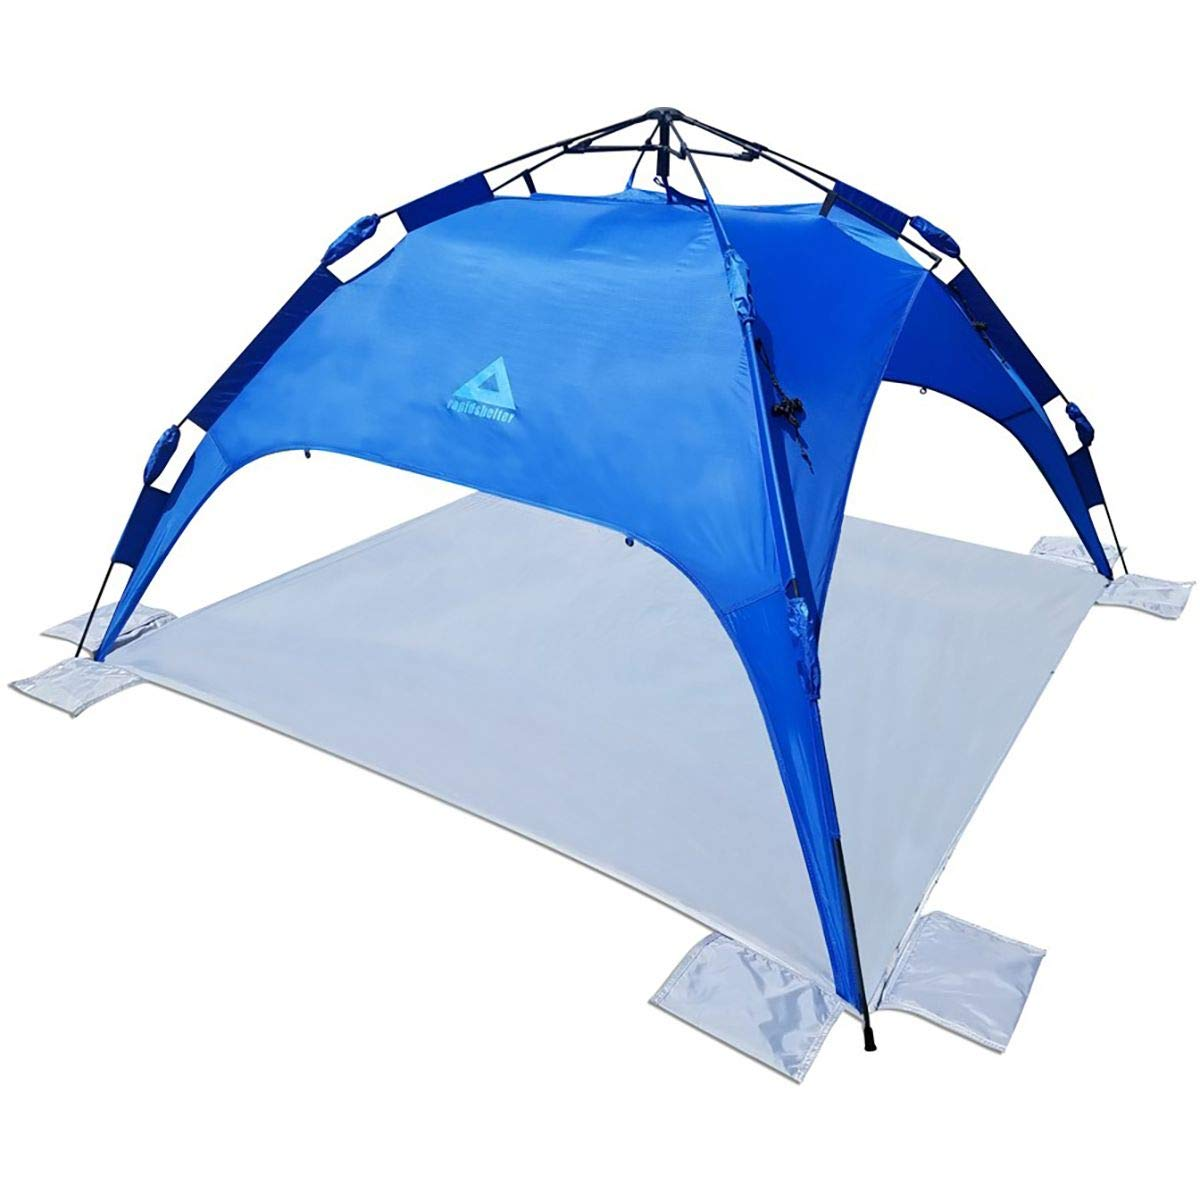 Rapid Shelter Screenhouse One Color, One Size